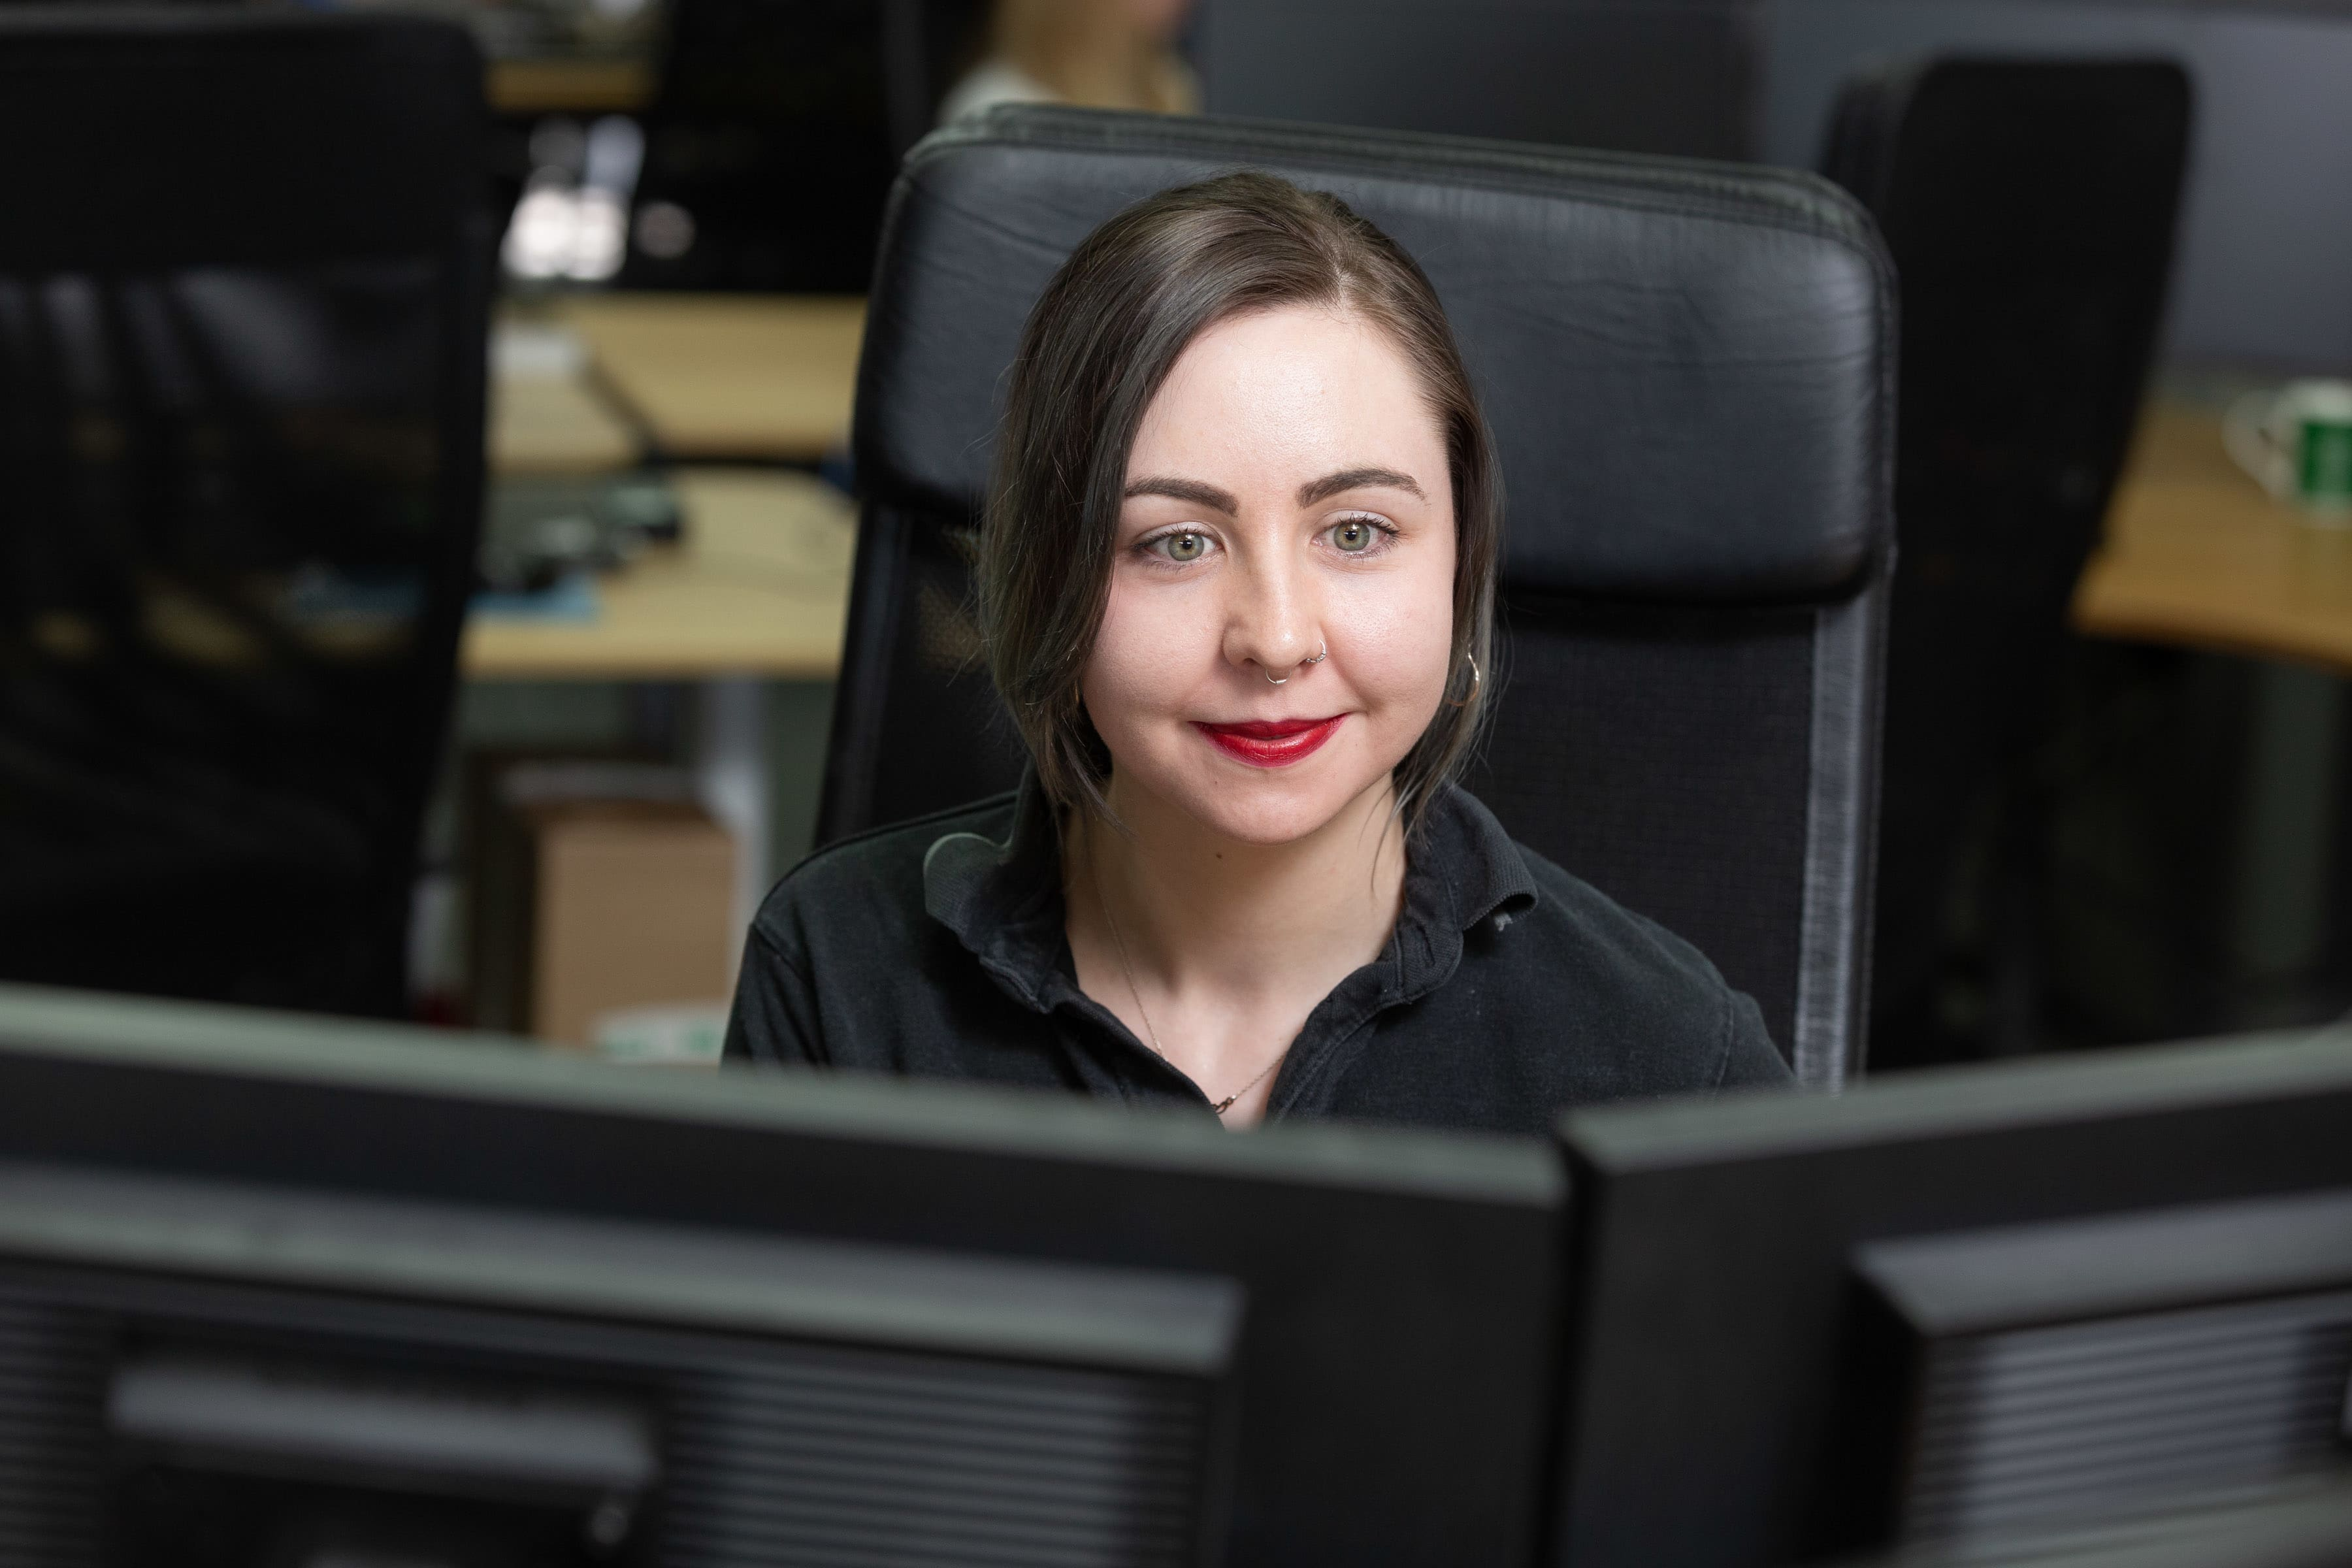 Customer Service Manager working at her computer screens